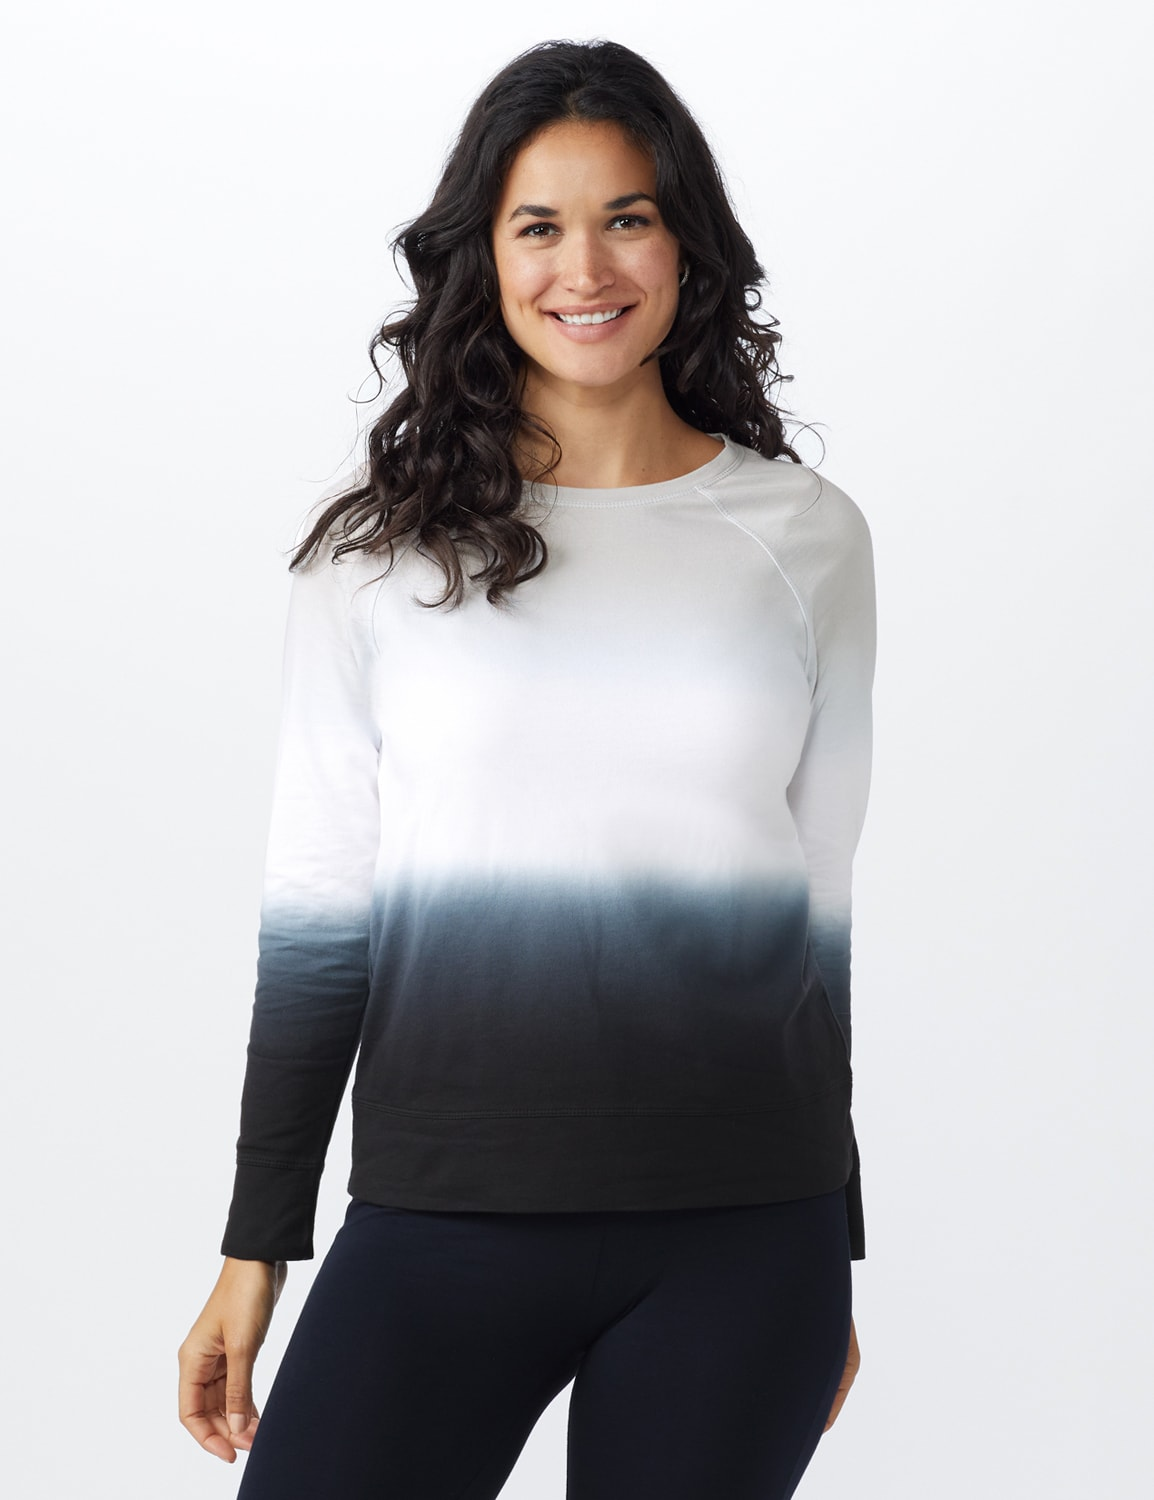 Dip Dye Scoop Neck French Terry Knit Top - Grey/Black - Front